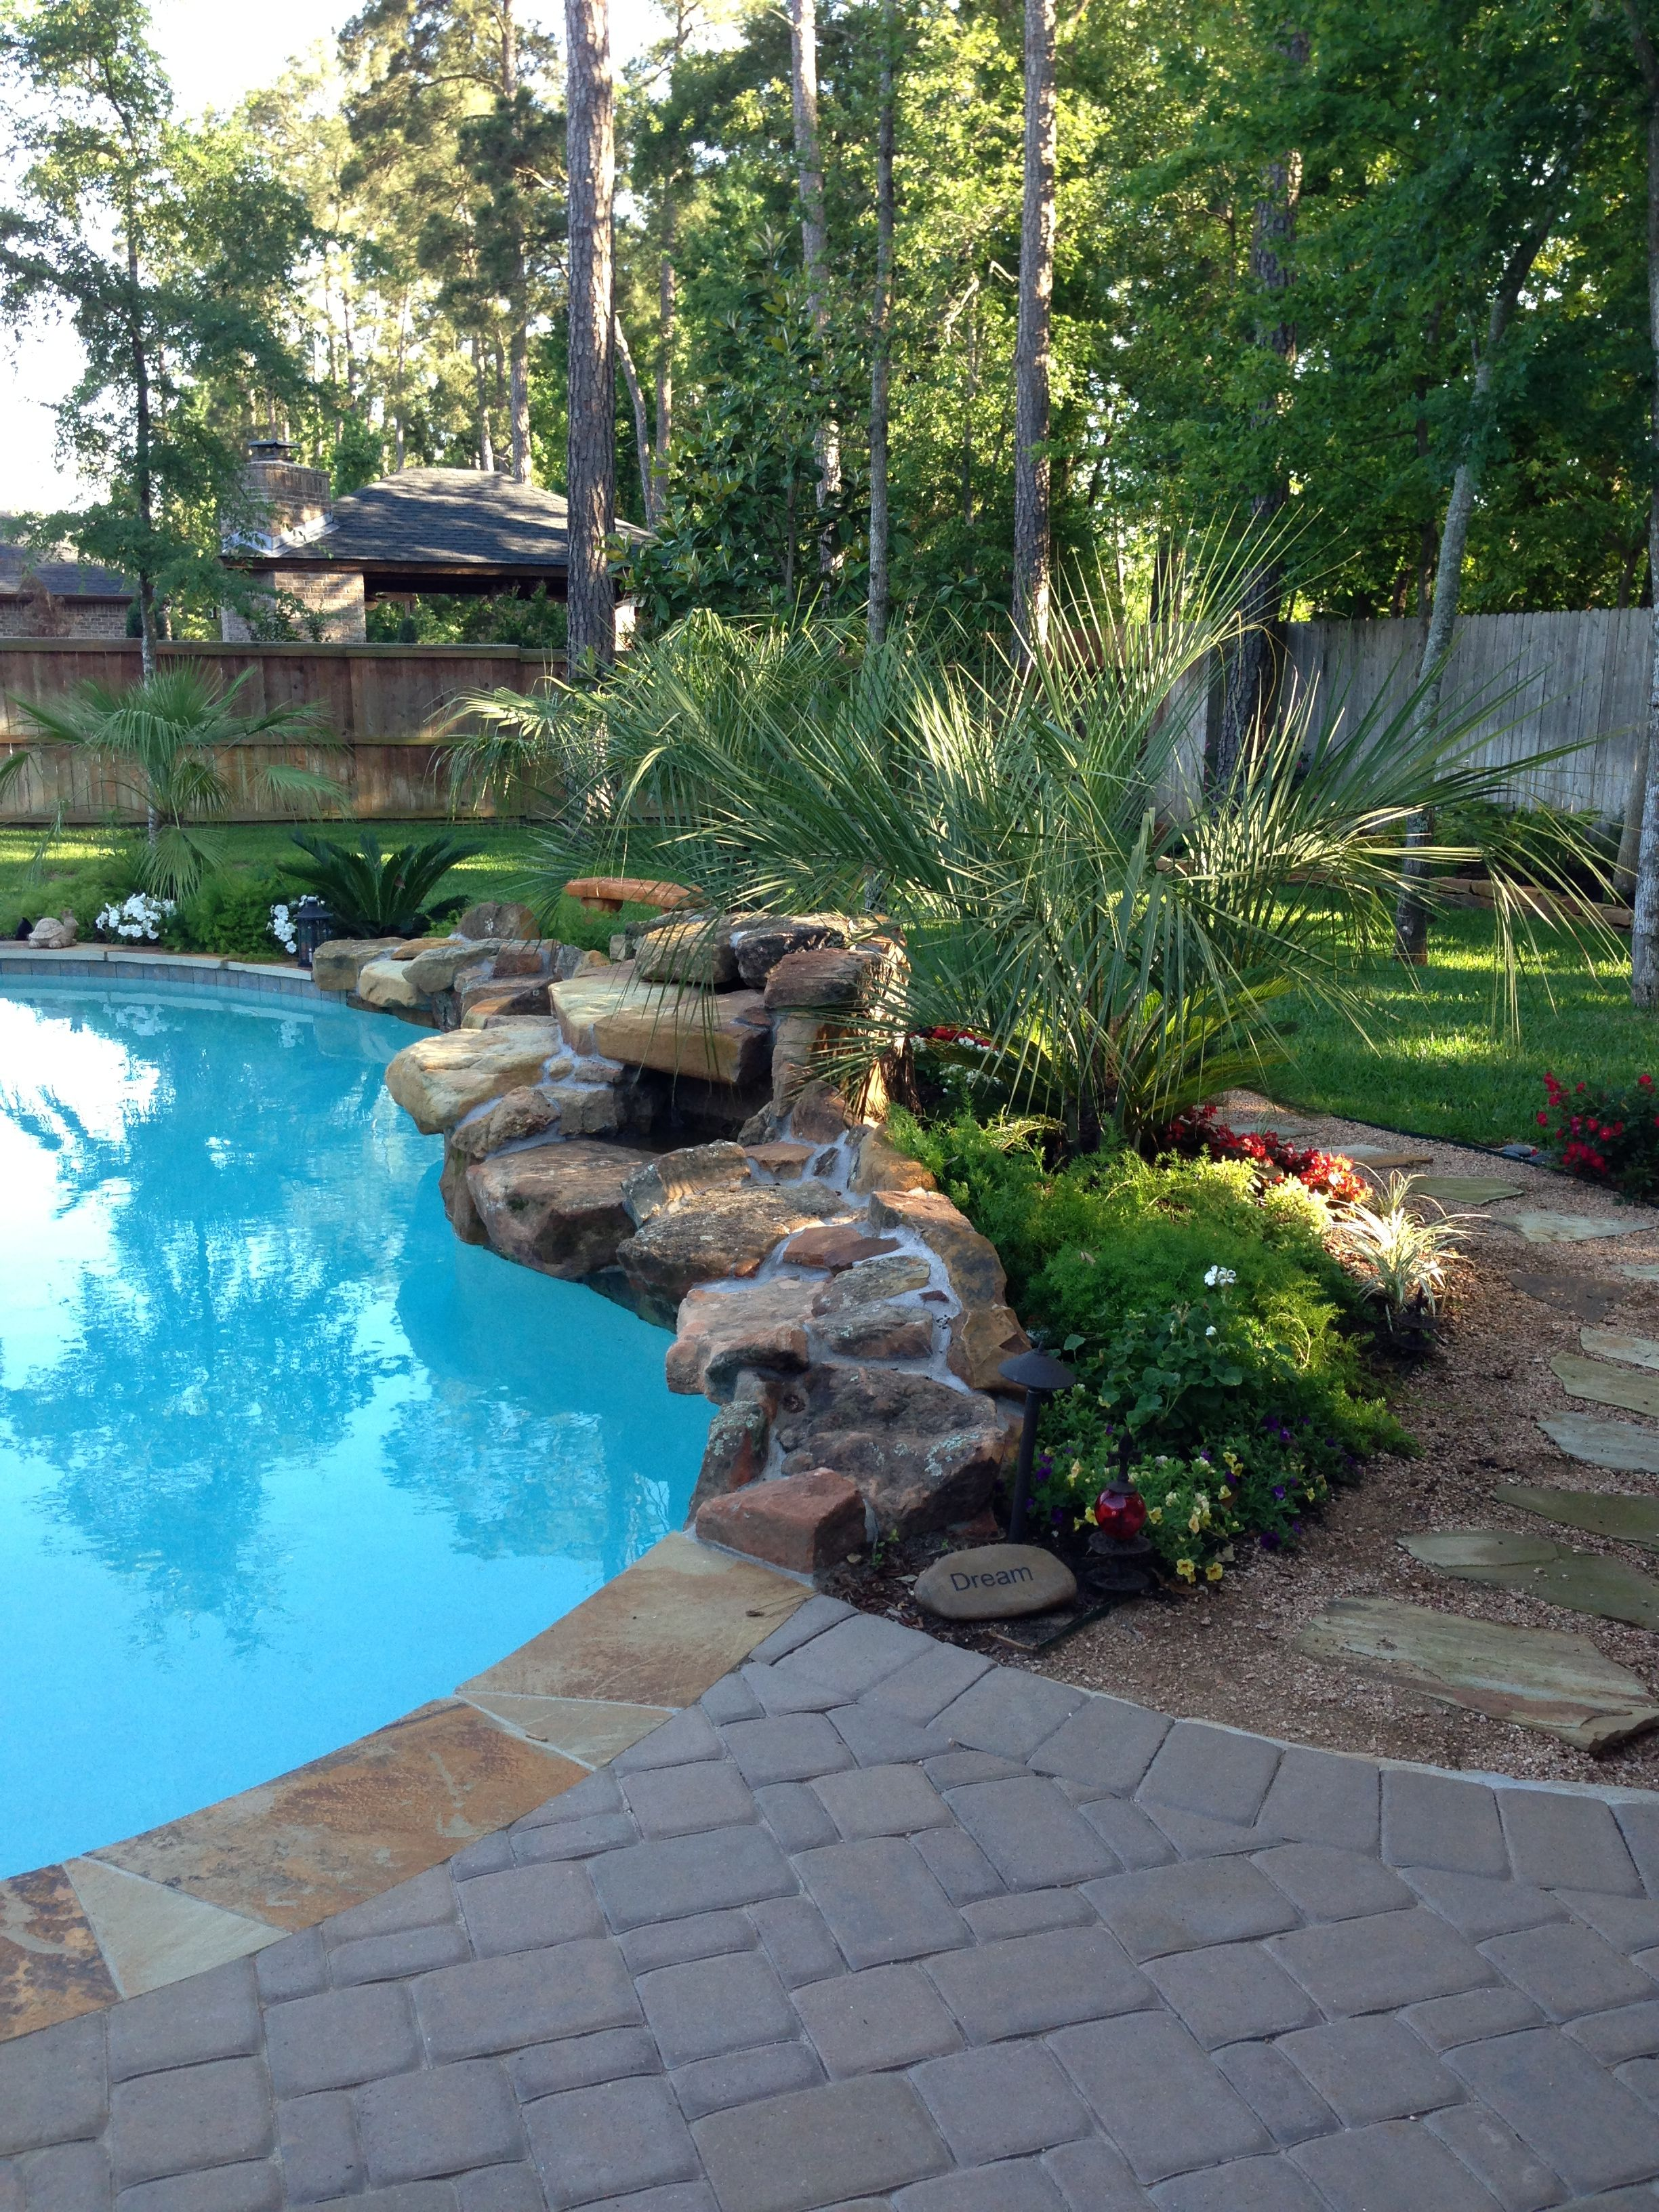 Pool Landscaping Pool Landscape Design Inground Pool Landscaping Landscaping Around Pool